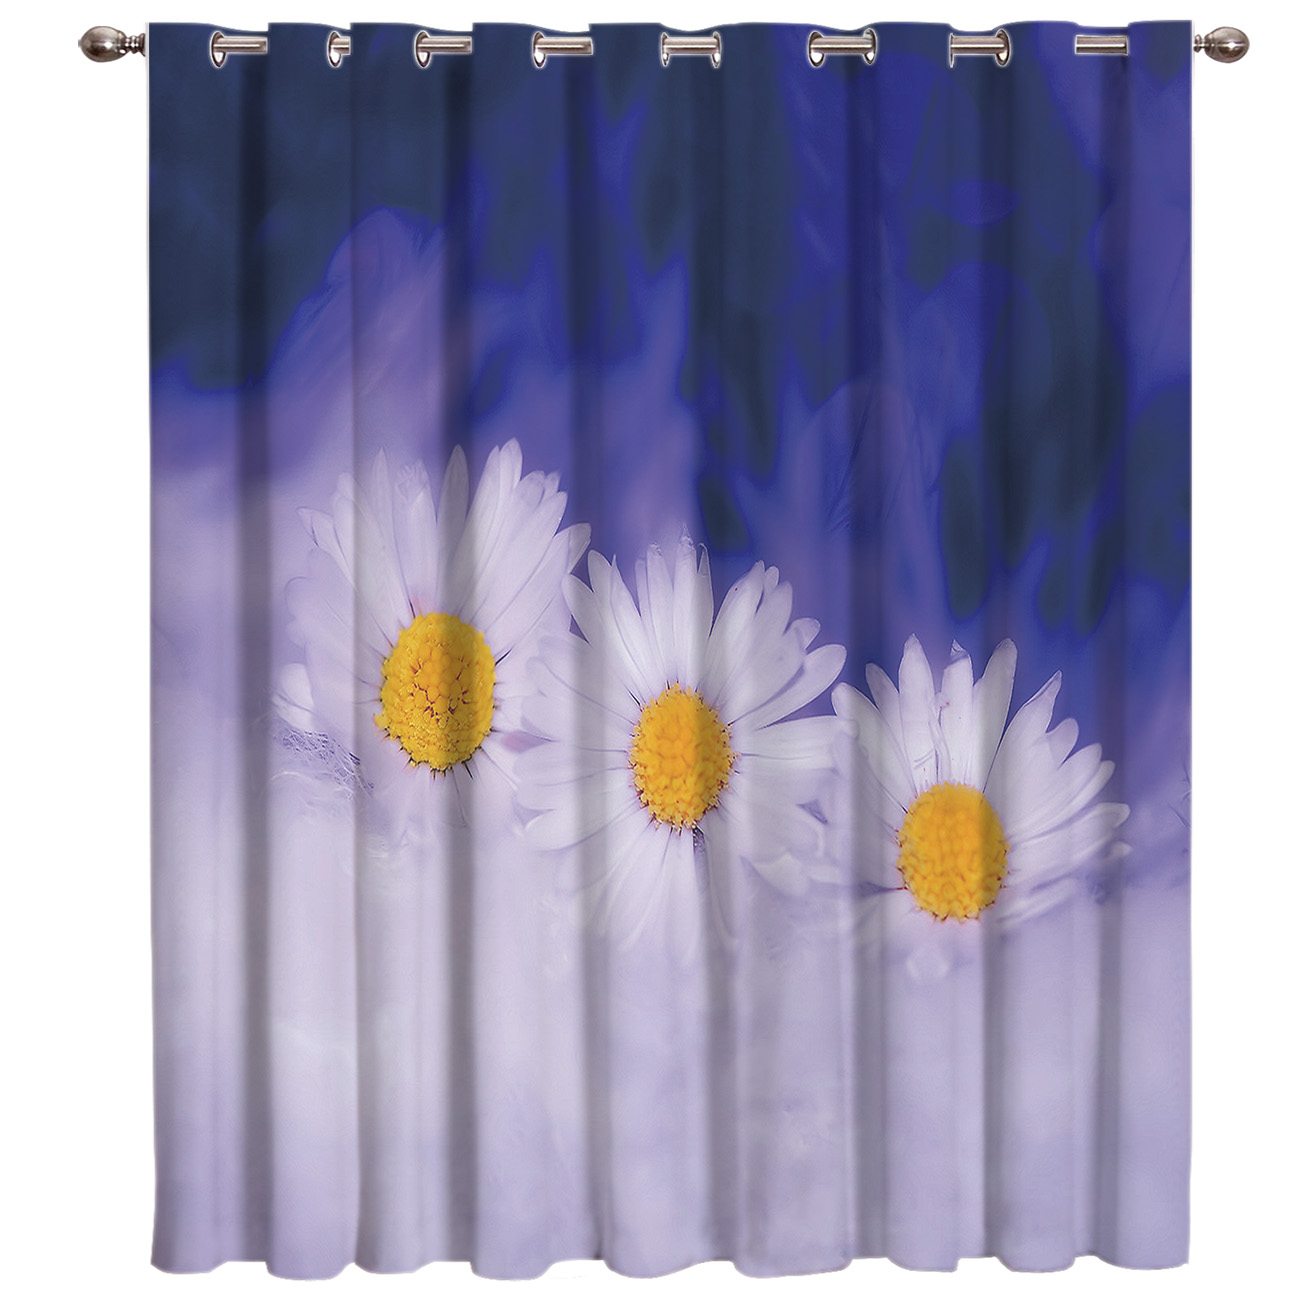 Purple Daisy Room Curtains Large Window Living Room Blackout Bedroom Kitchen Outdoor Decor Curtain Panels With Grommets Curtains